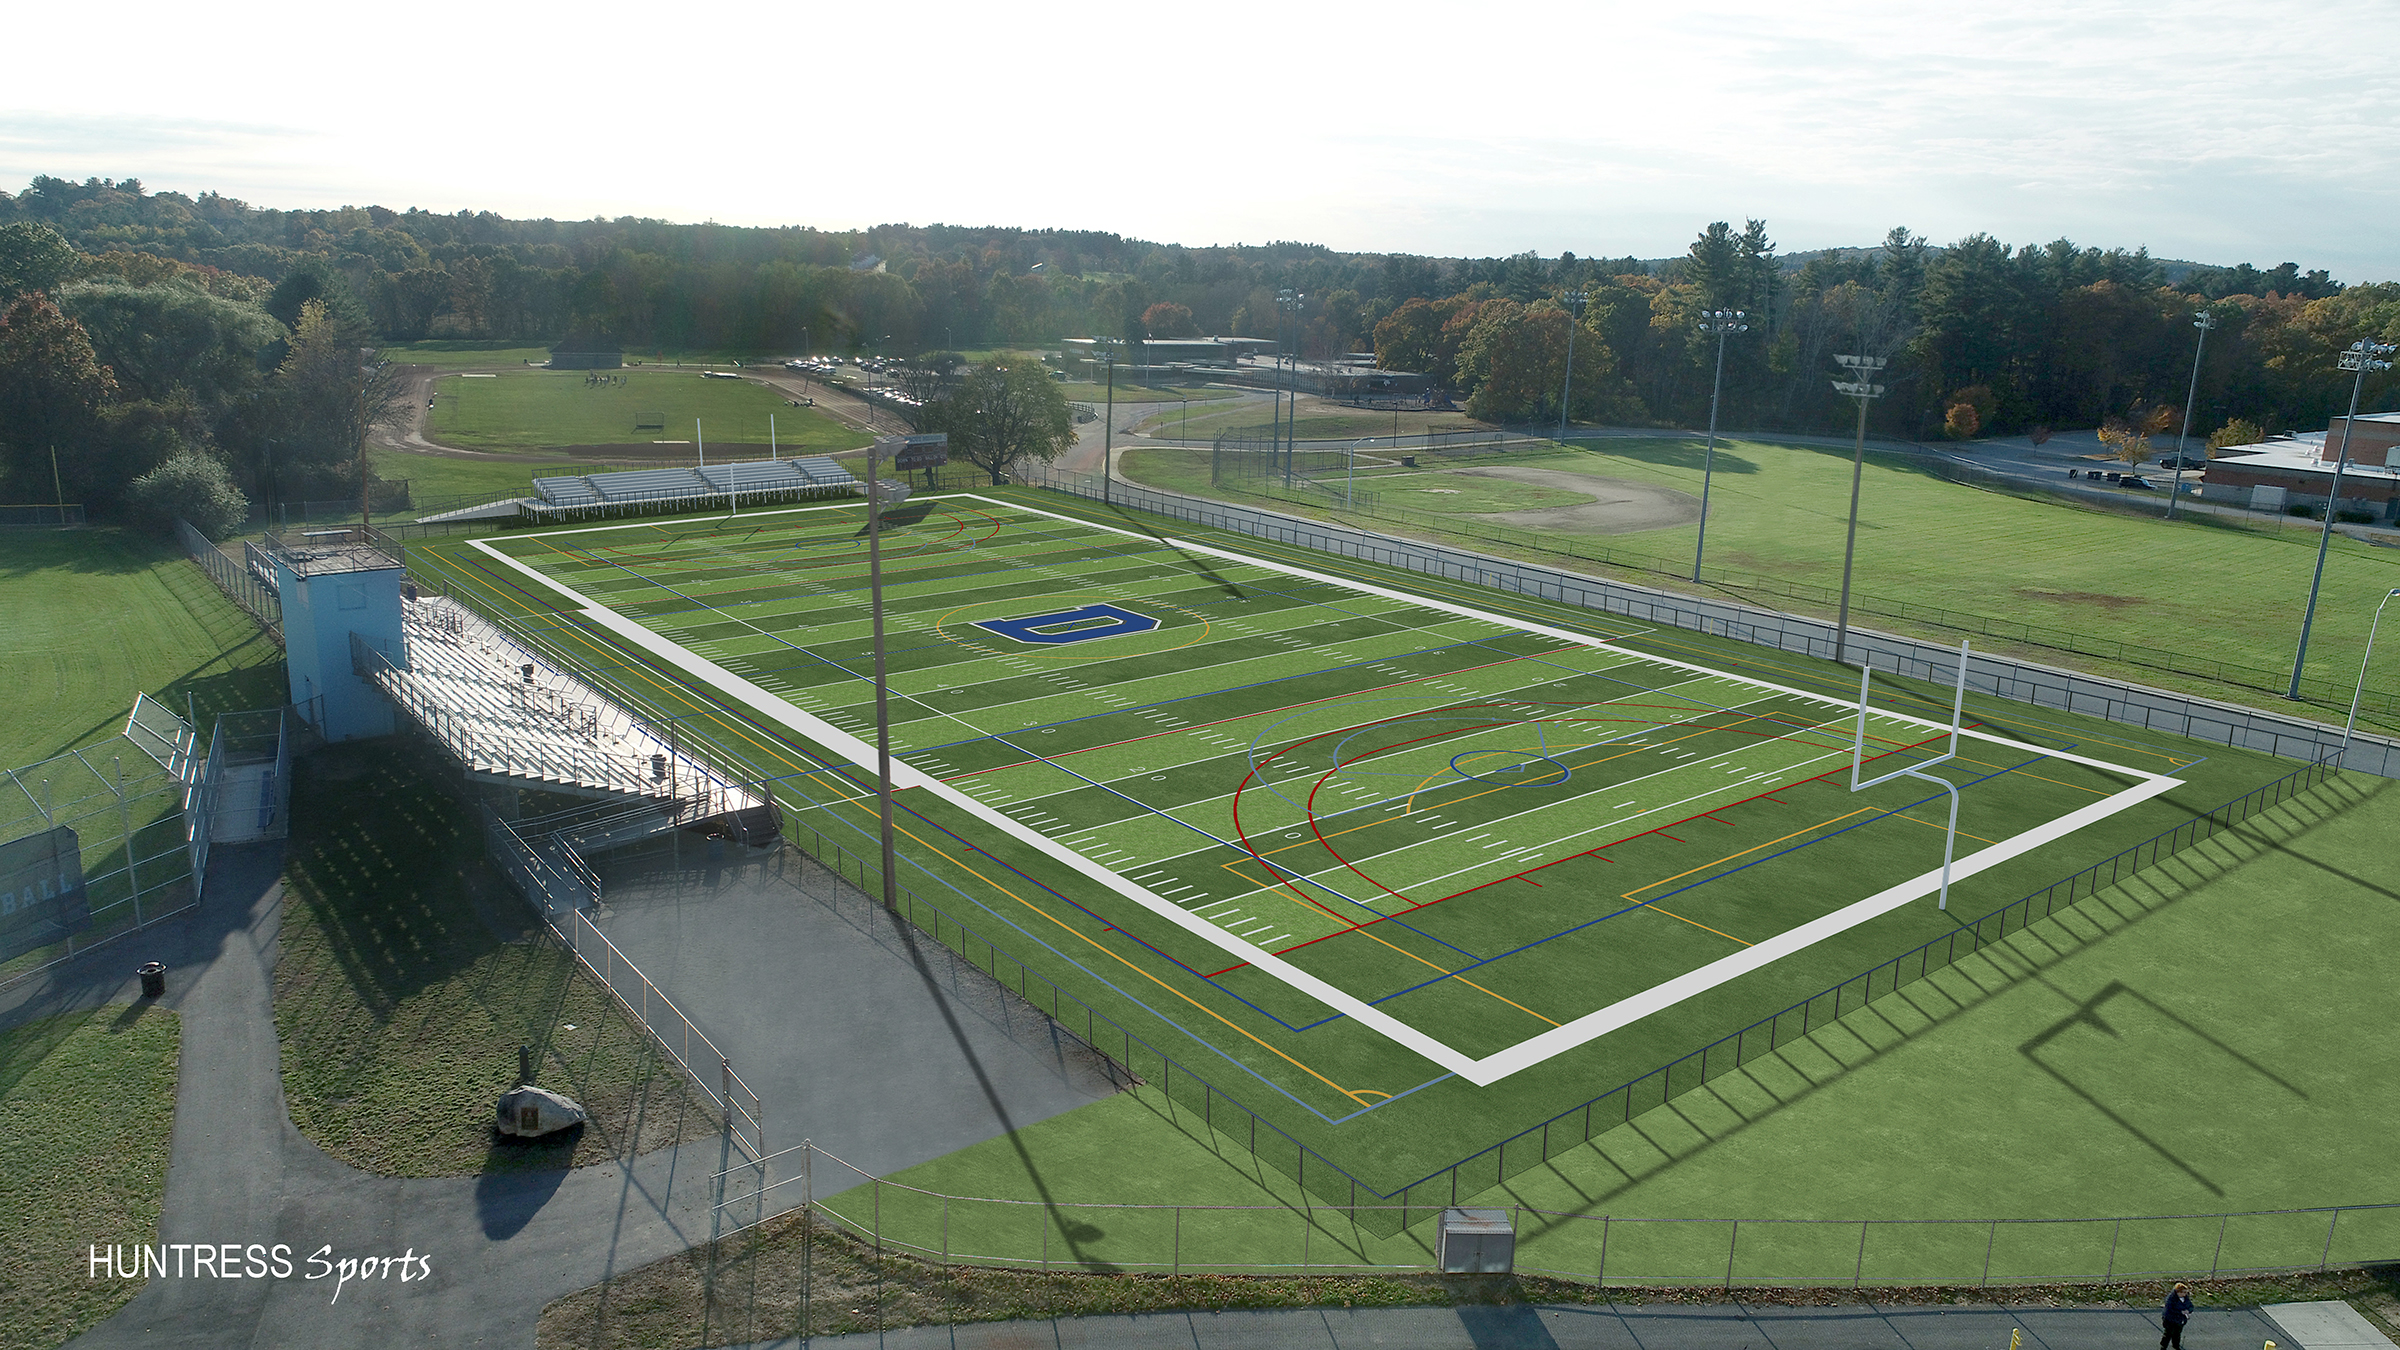 Proposed New Multi-Use Athletic Facility For Dracut